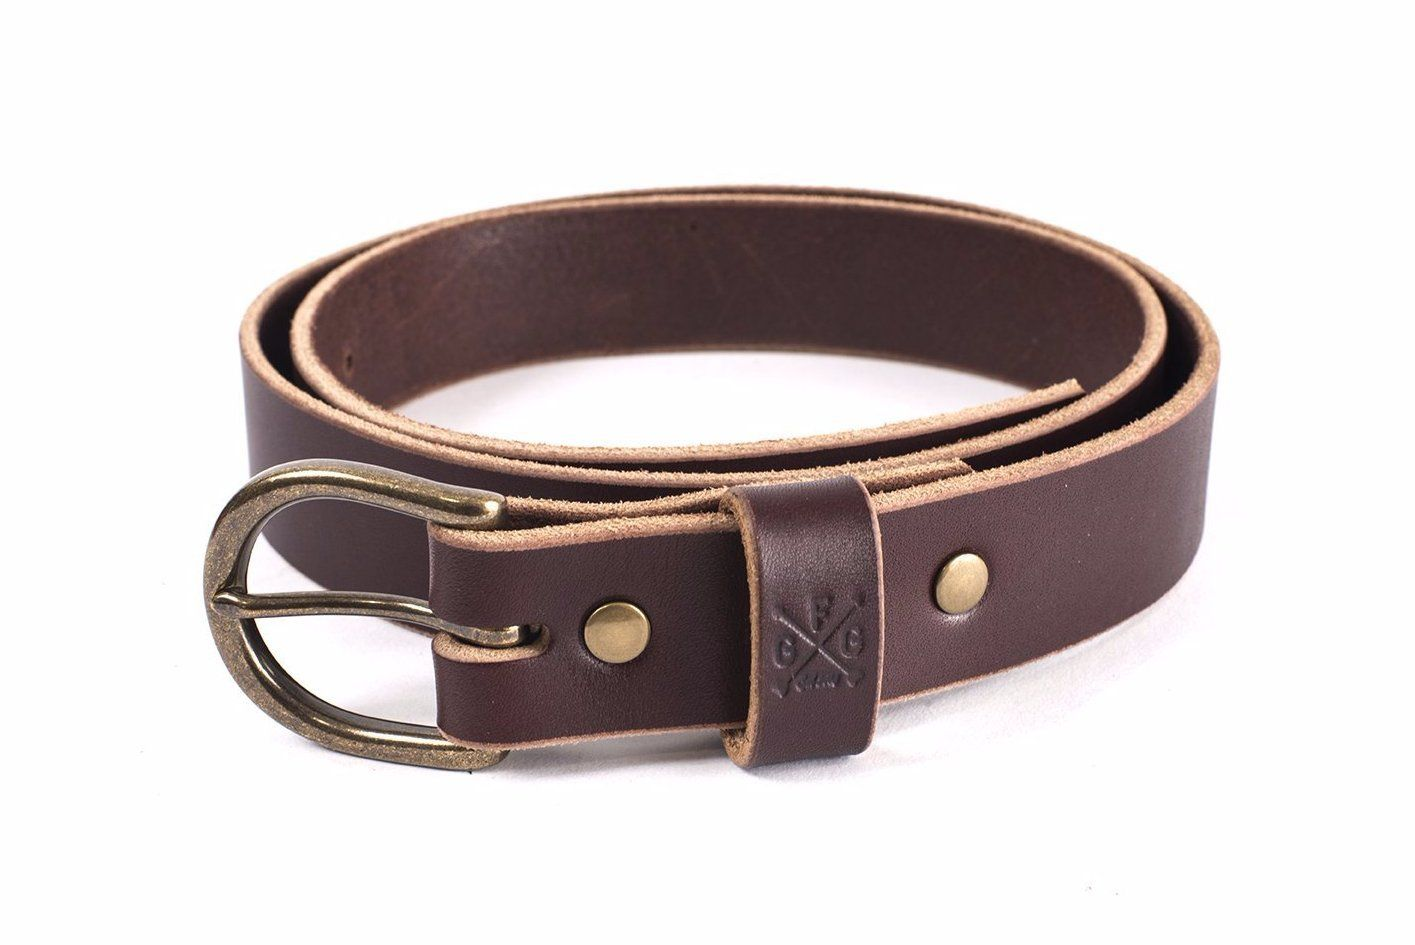 FLETCHER HANDMADE LEATHER BELT